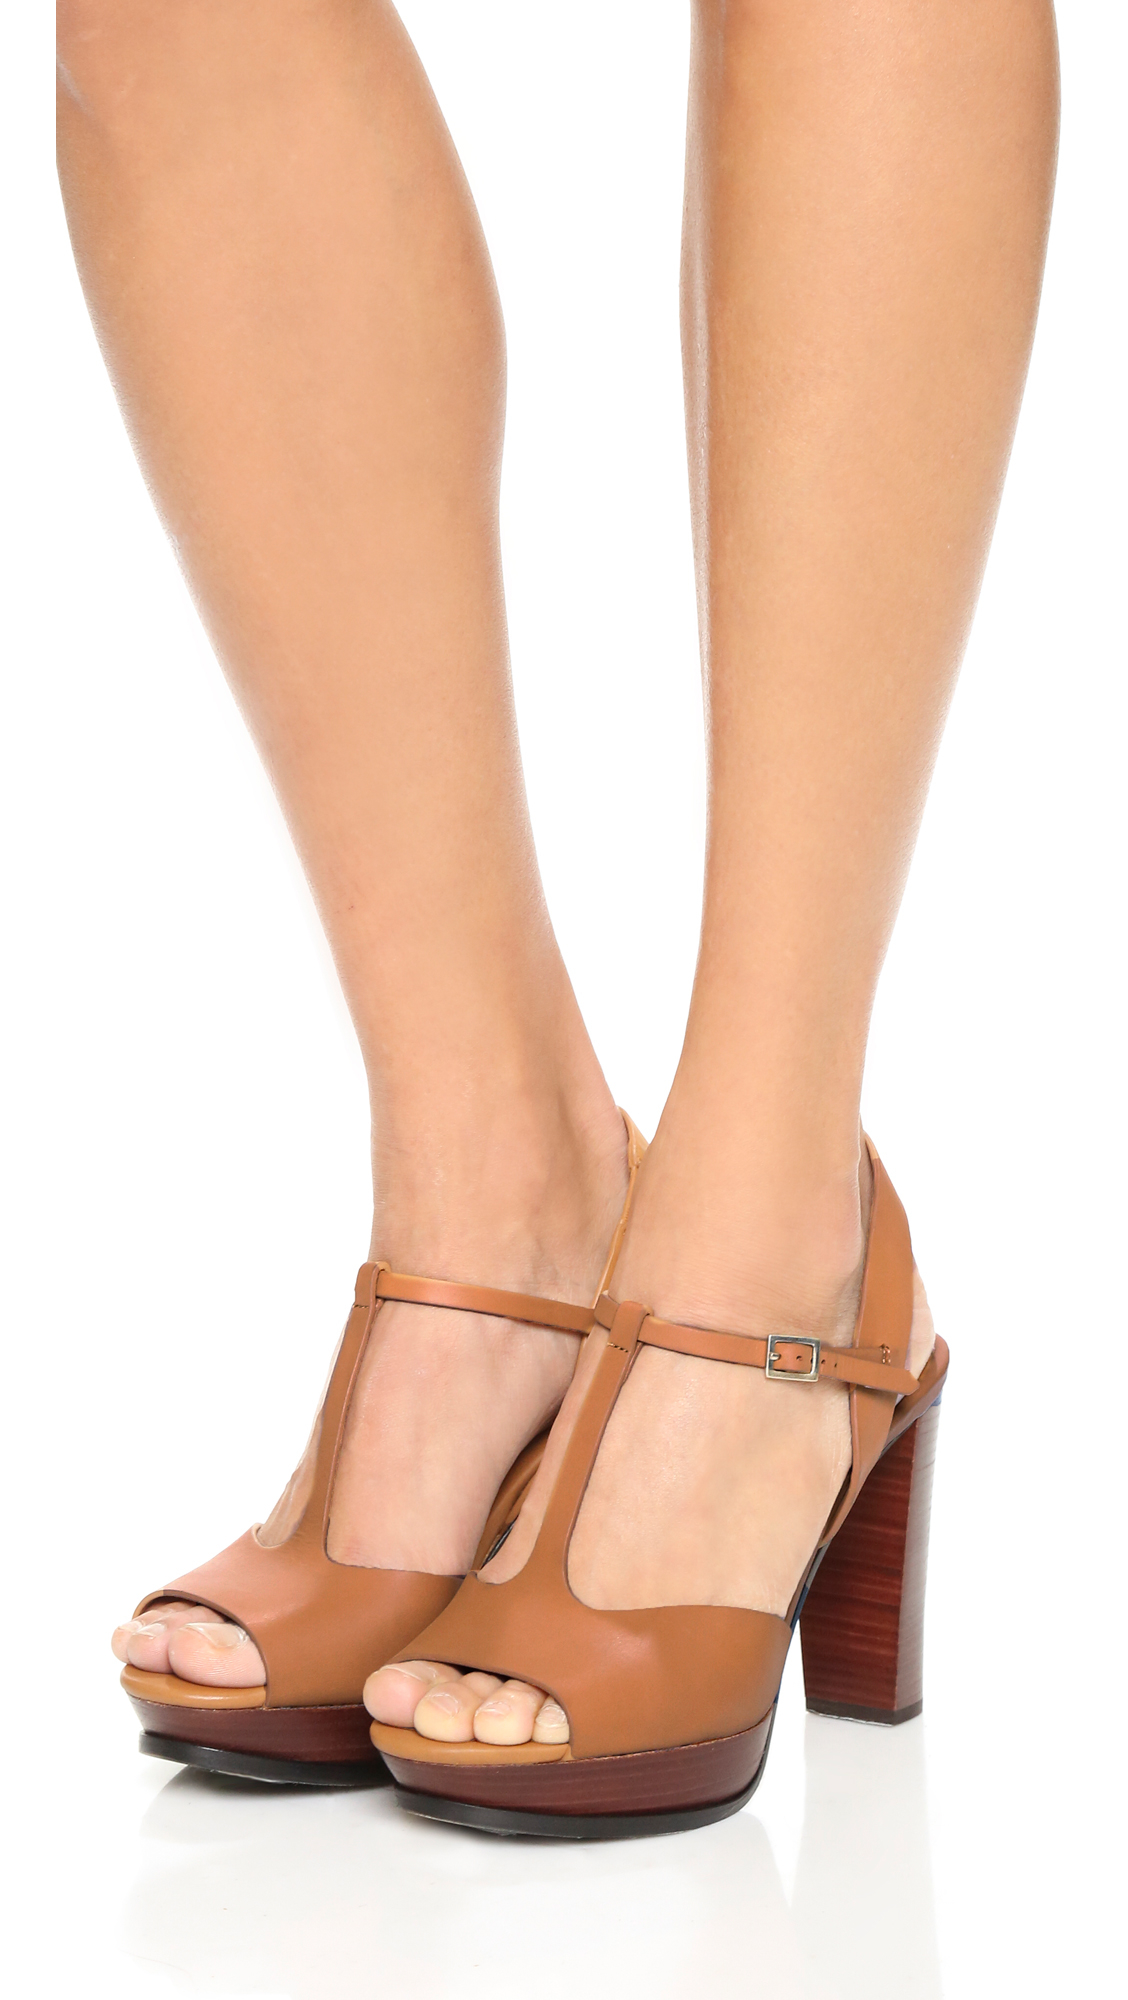 aff514e7808 Lyst - See By Chloé Alex Platform Sandals in Brown